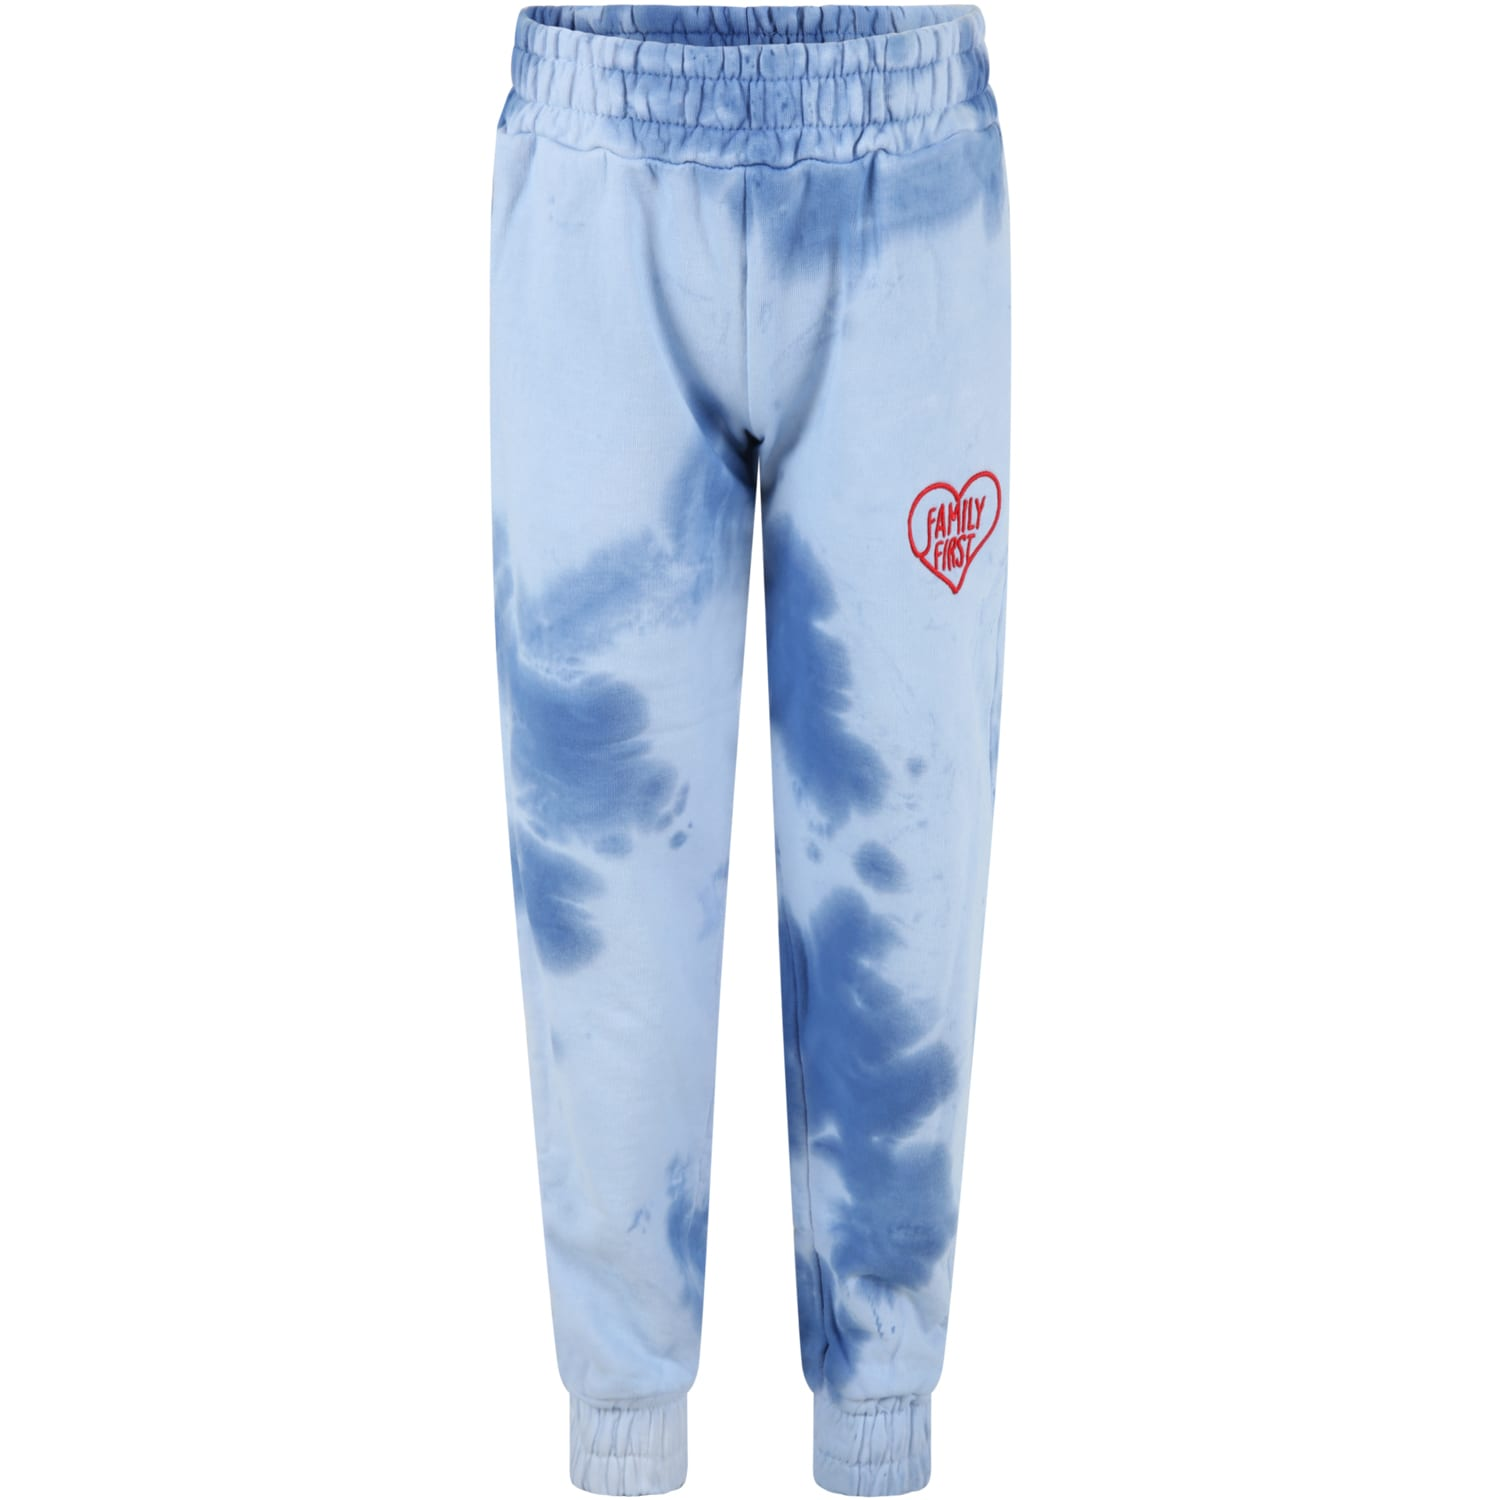 Tie-dye Sweatpant For Kids With Heart